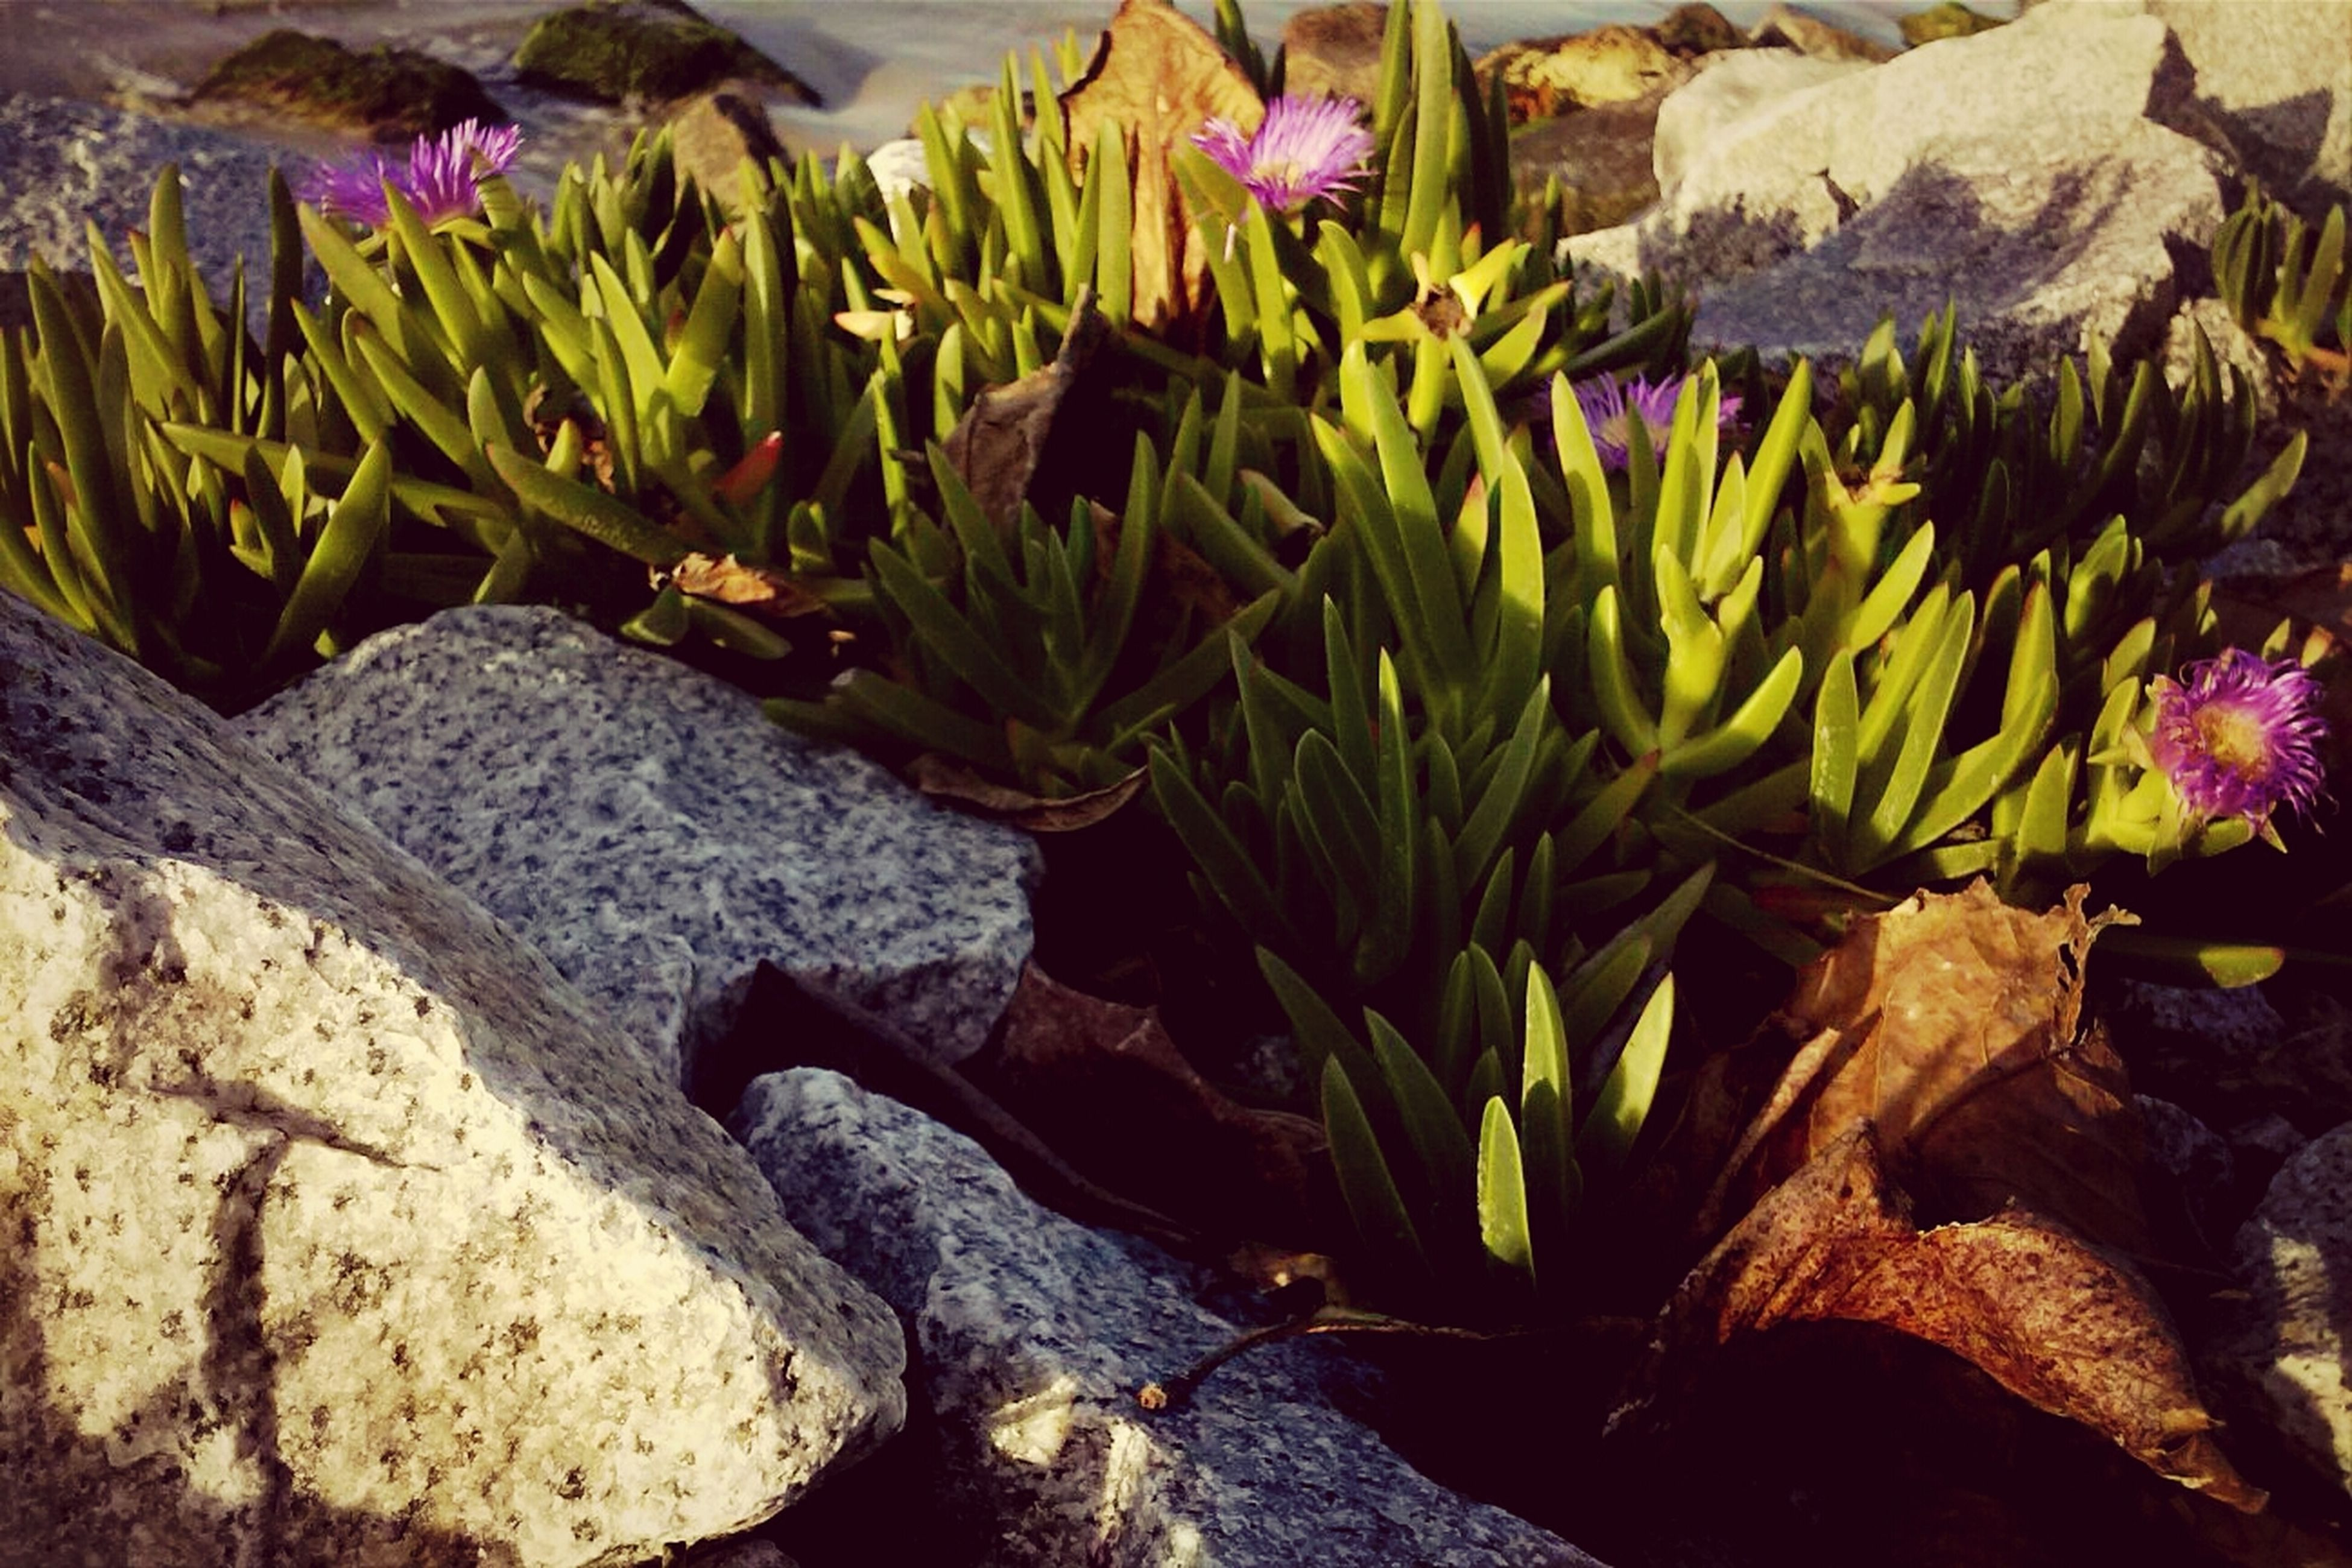 flower, plant, growth, fragility, freshness, petal, beauty in nature, nature, purple, leaf, rock - object, close-up, outdoors, blooming, day, high angle view, no people, flower head, sunlight, field